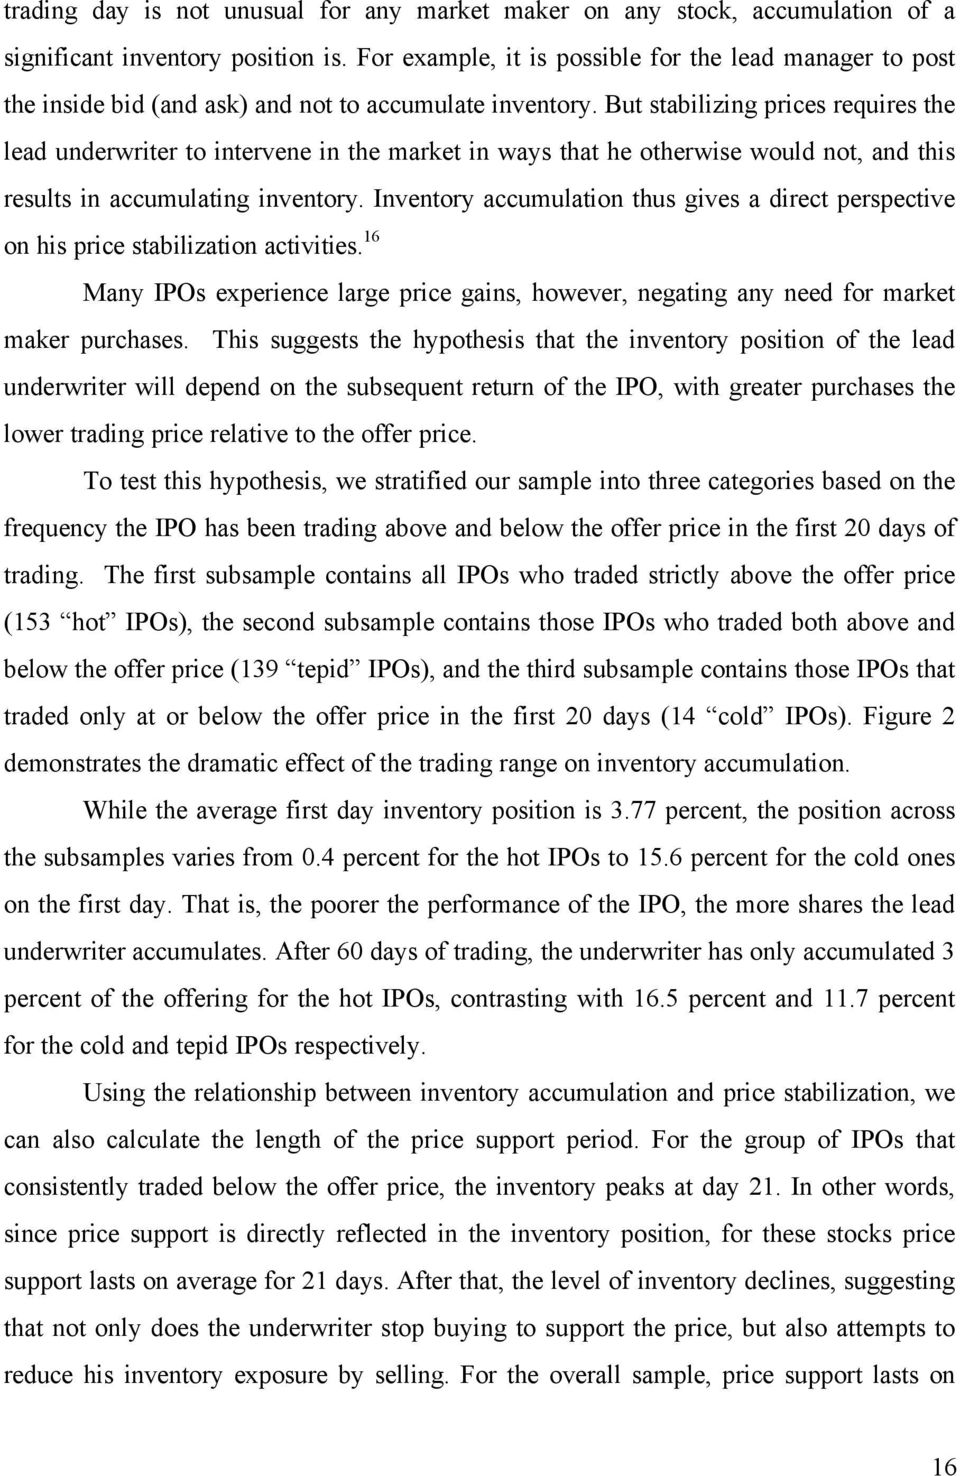 But stabilizing prices requires the lead underwriter to intervene in the market in ways that he otherwise would not, and this results in accumulating inventory.